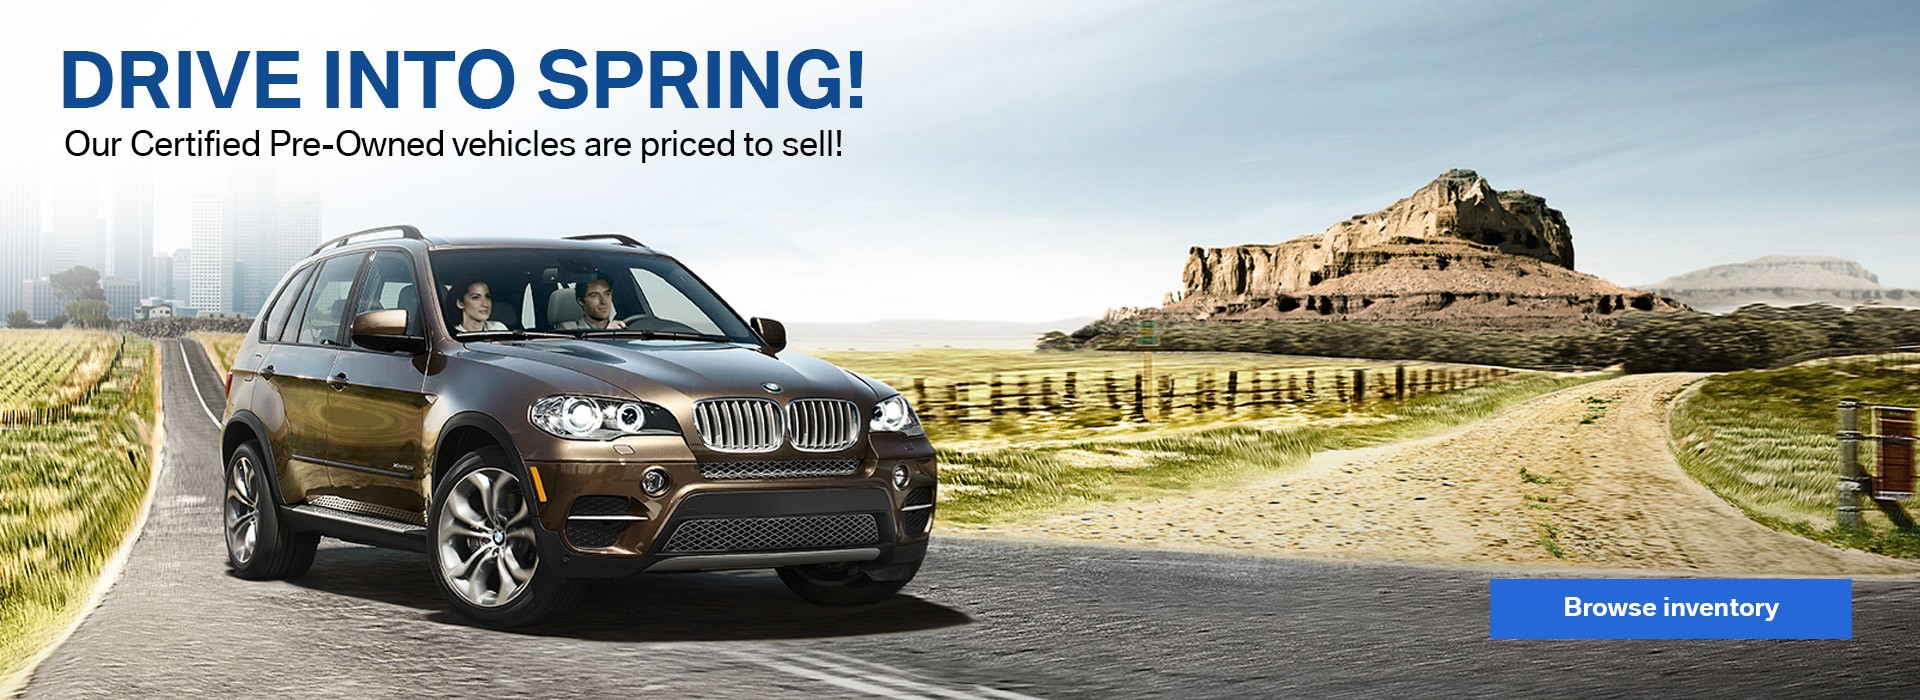 Certidied Pre-Owned BMW Sale at Town+Country BMW